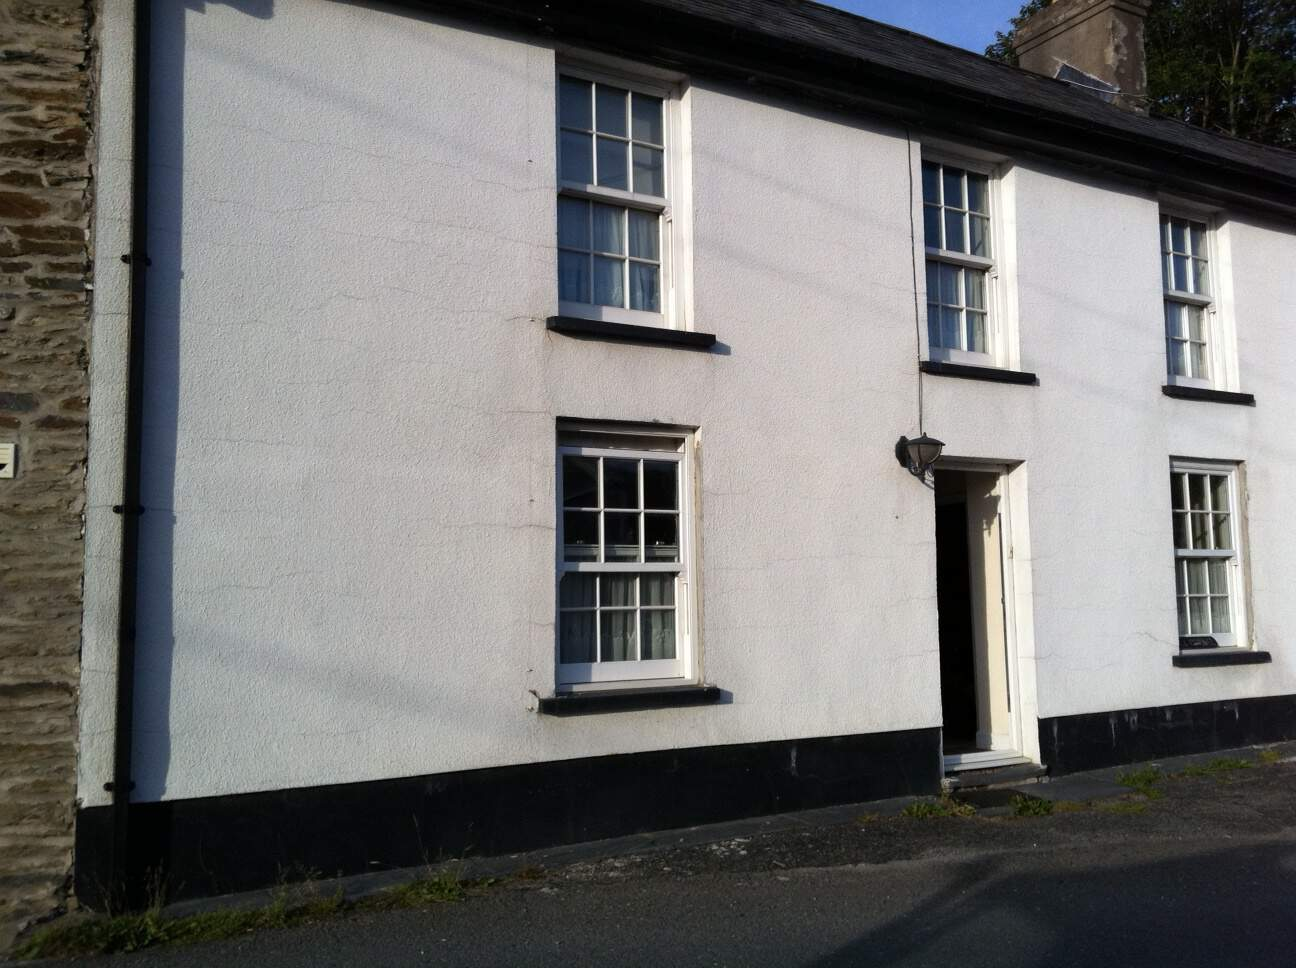 A house in wales before applying external wall coatings